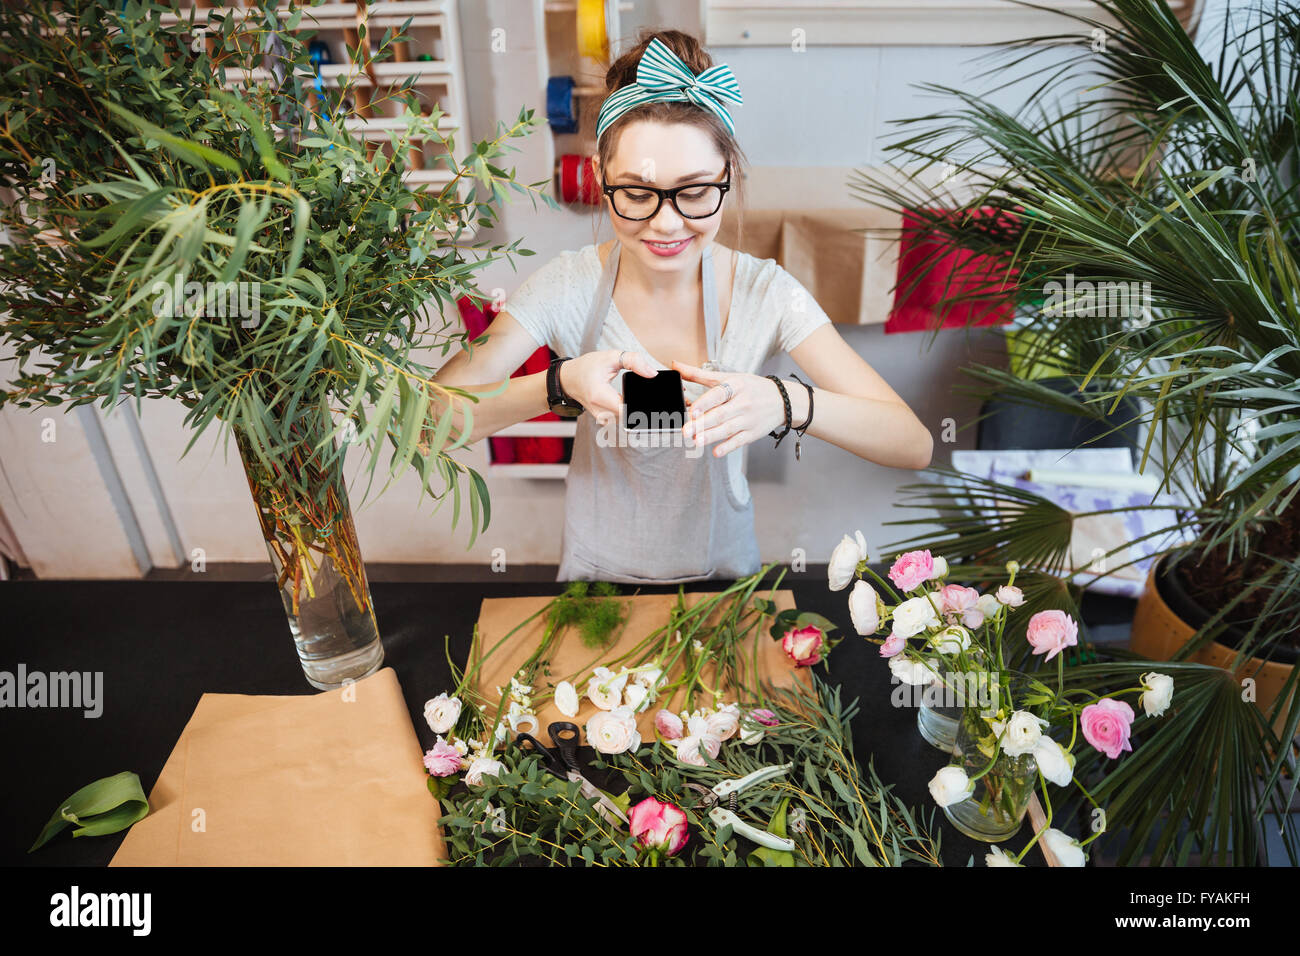 Happy beautiful young woman taking photos of flowers on table in the shop - Stock Image